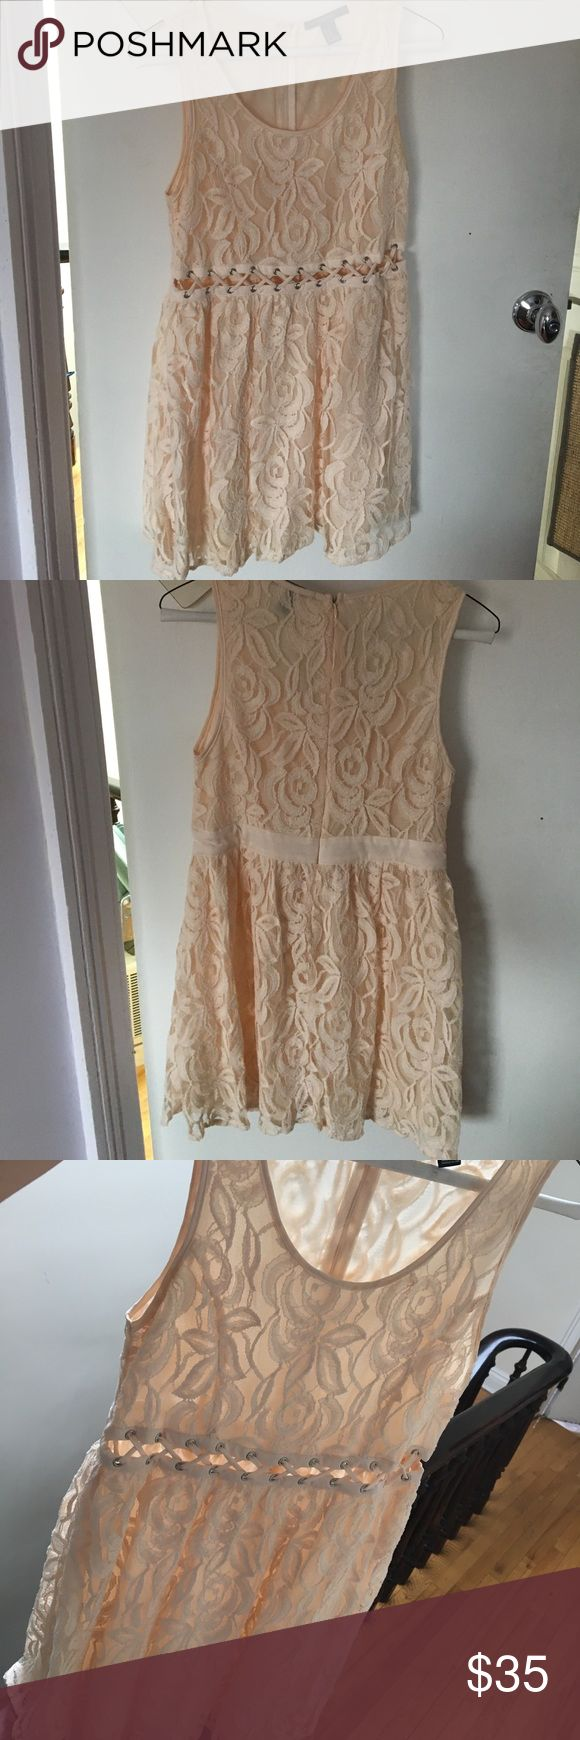 Lace cream colored dress A cute little cream colored dress! It's a great thing to wear if your going out to a fancy dinner or a party! The front has a little see through pattern which makes it so cute. I've worn this once! Forever 21 Dresses Mini